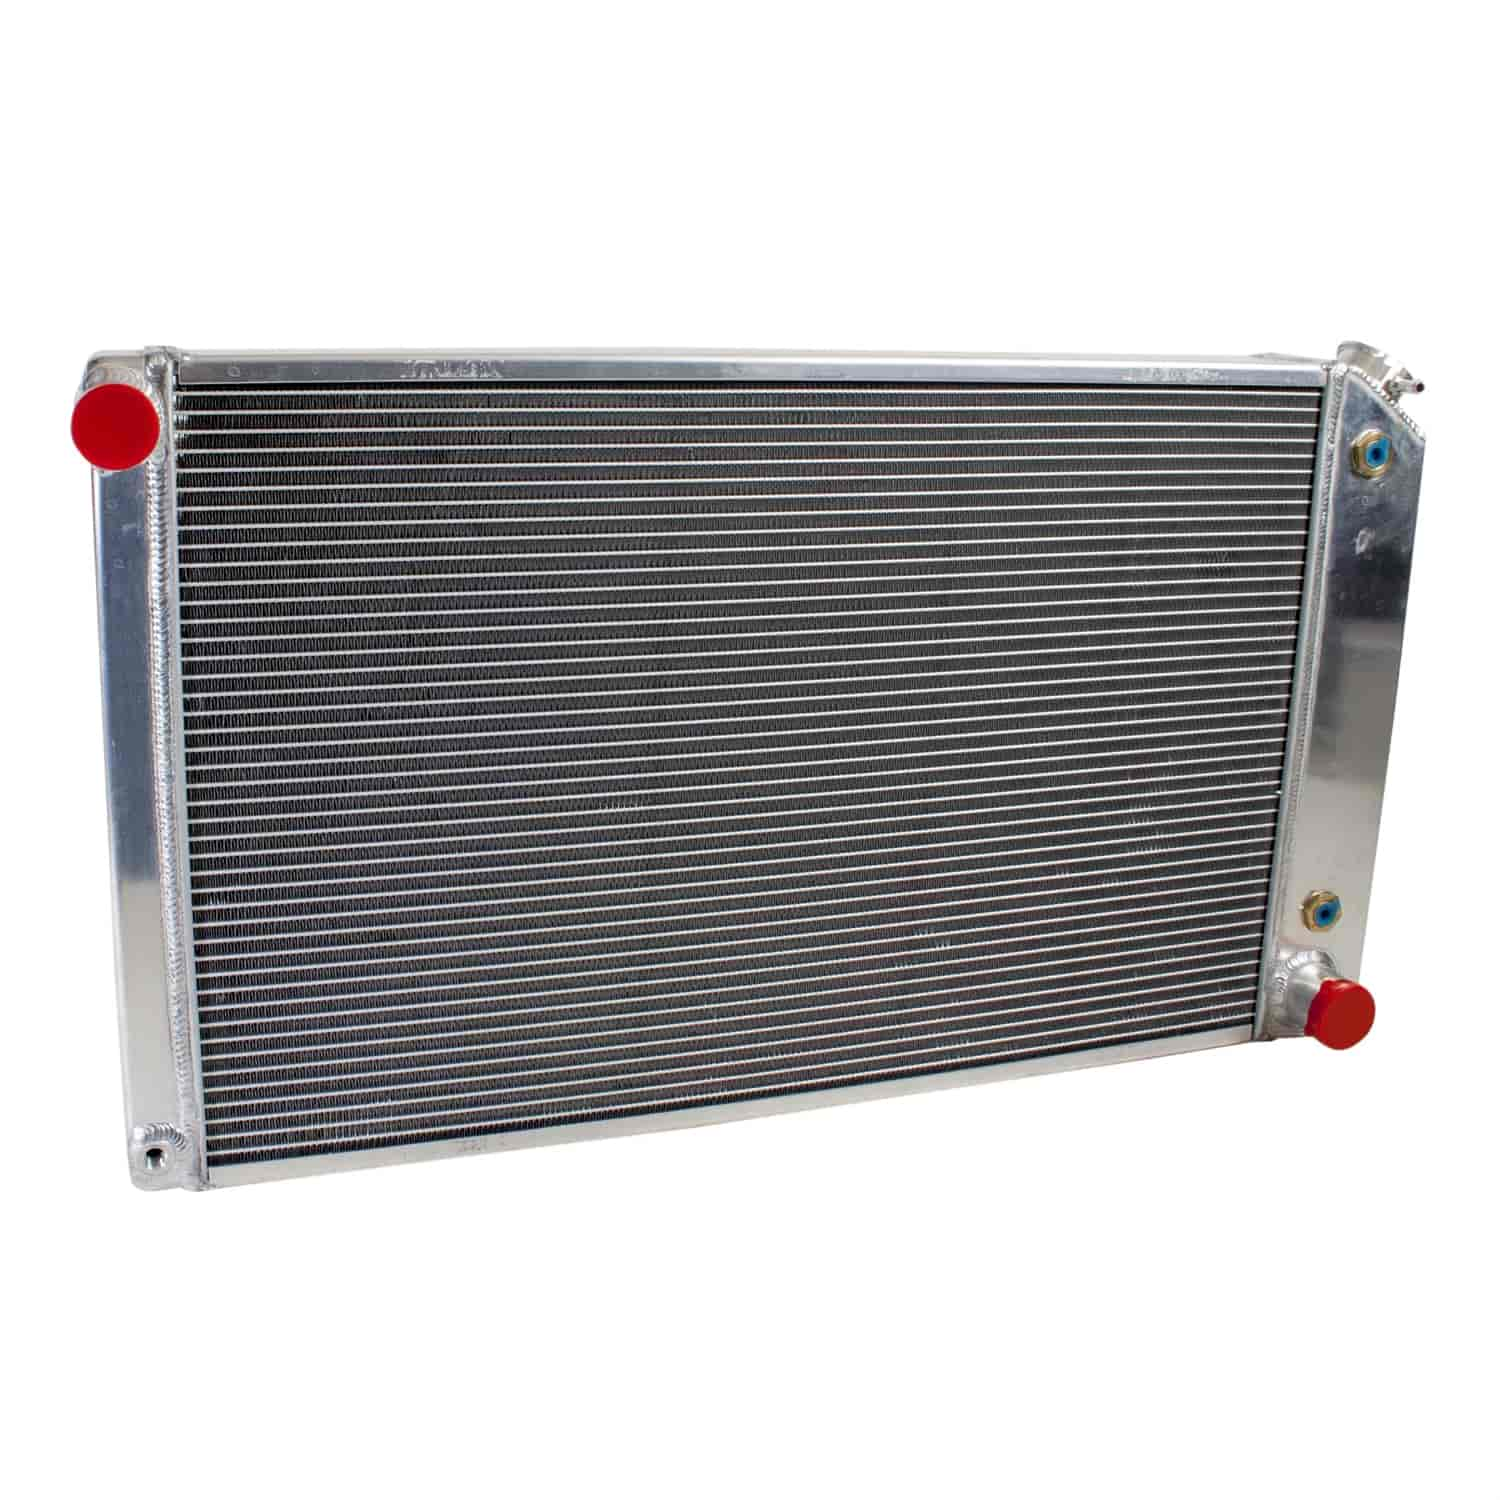 Griffin Radiators 8-70008